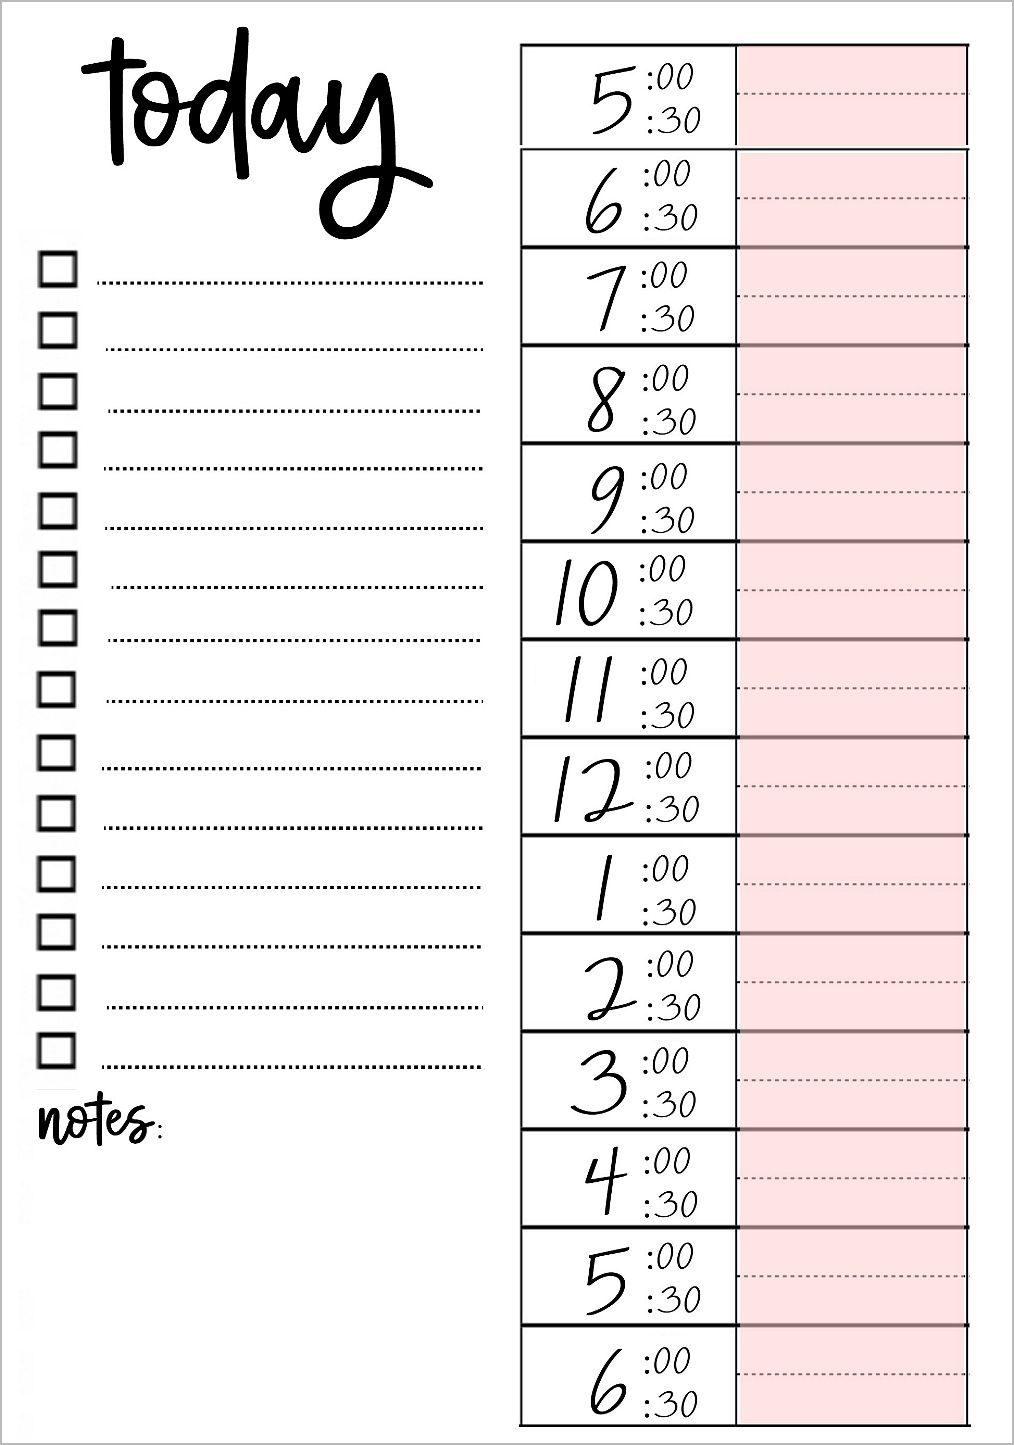 Printable To Do Lists That Work | Free Printables | Printables, To - Free Printable To Do Lists To Get Organized